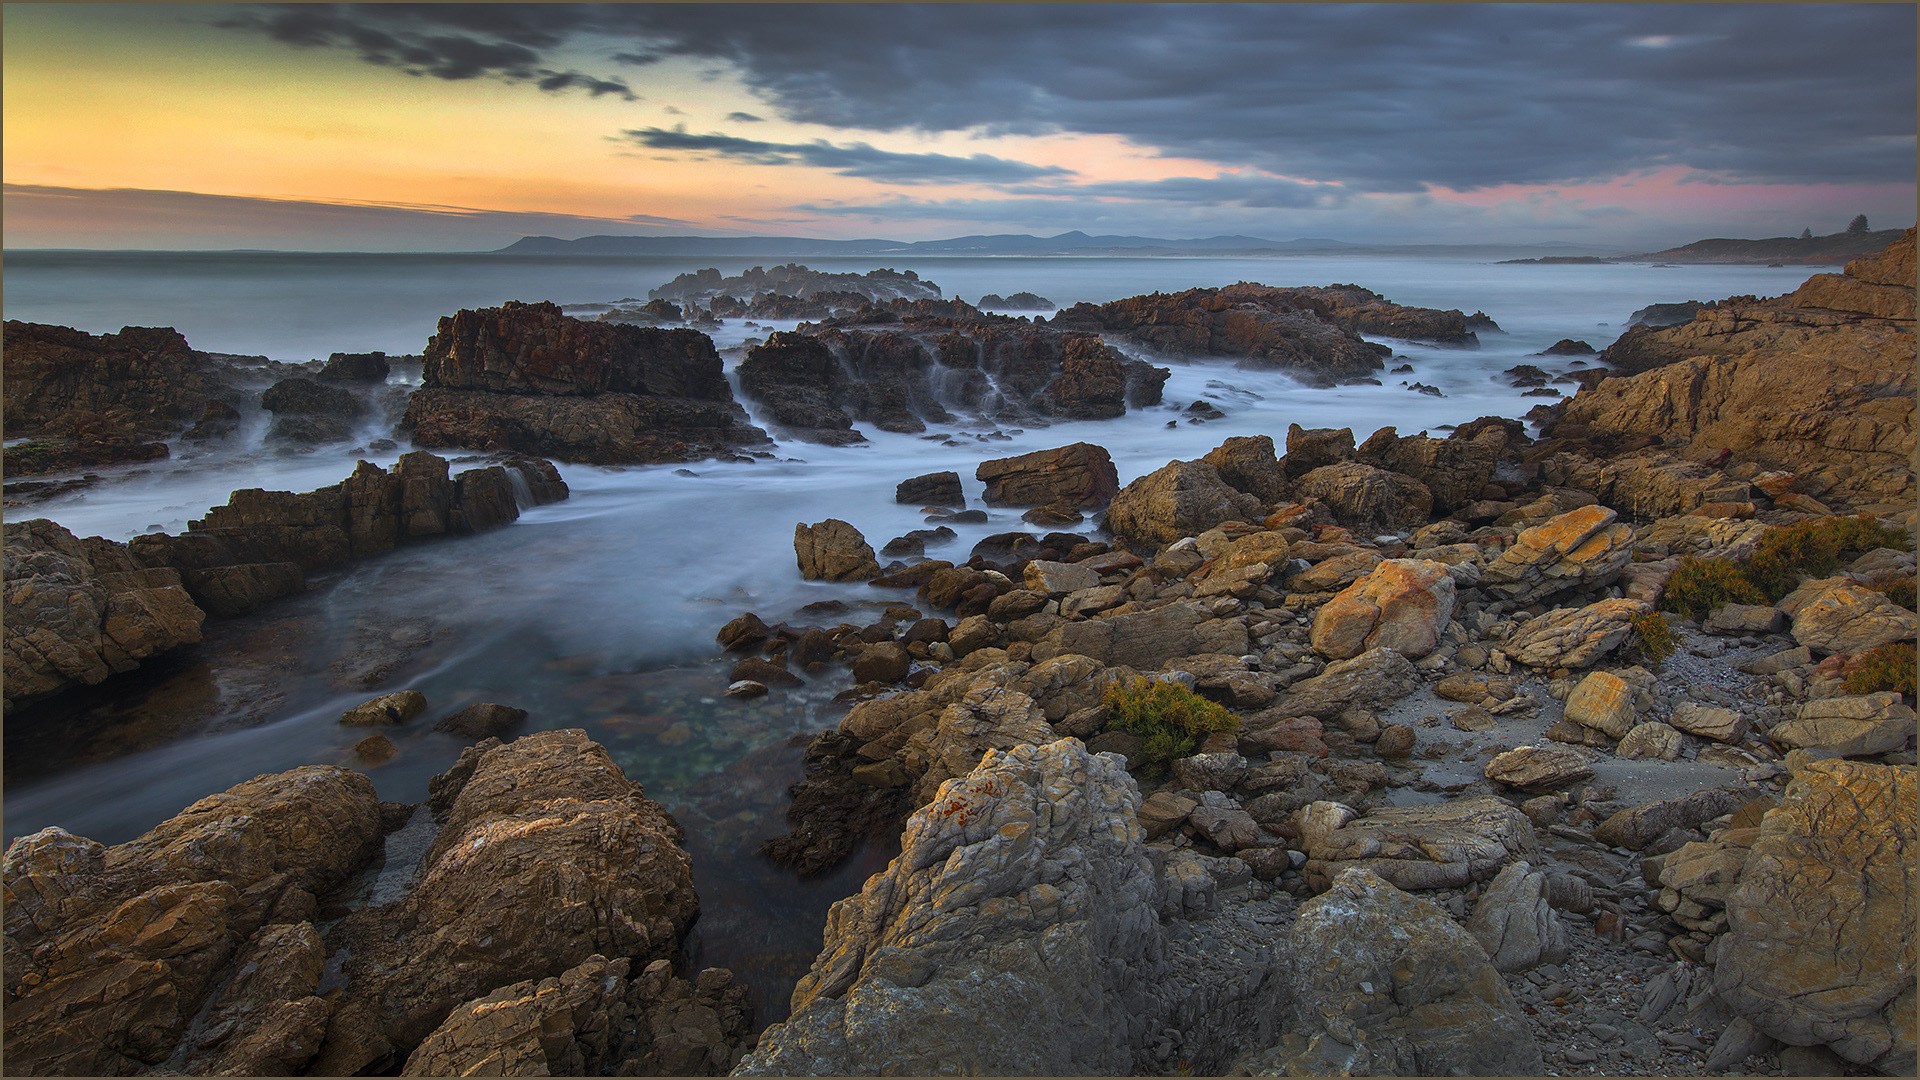 Tygerberg Photographic Society